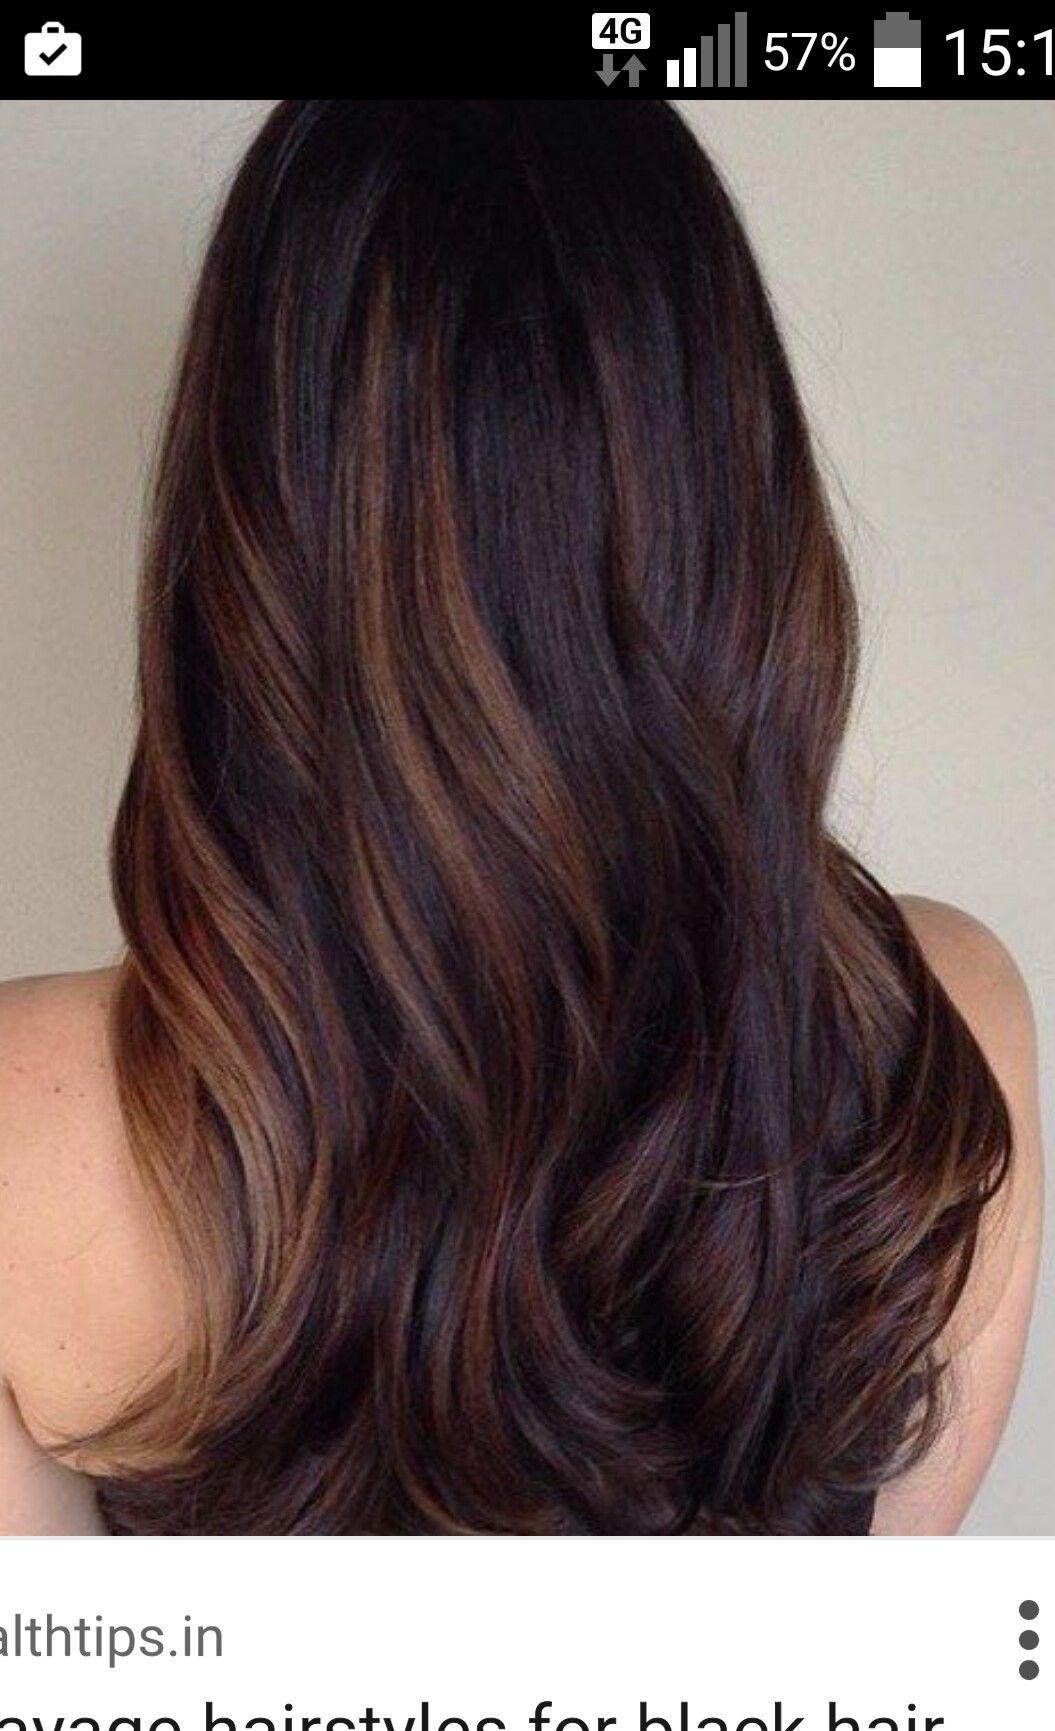 Pin By Liliana Ospina On Cabello Pinterest Hair Coloring And